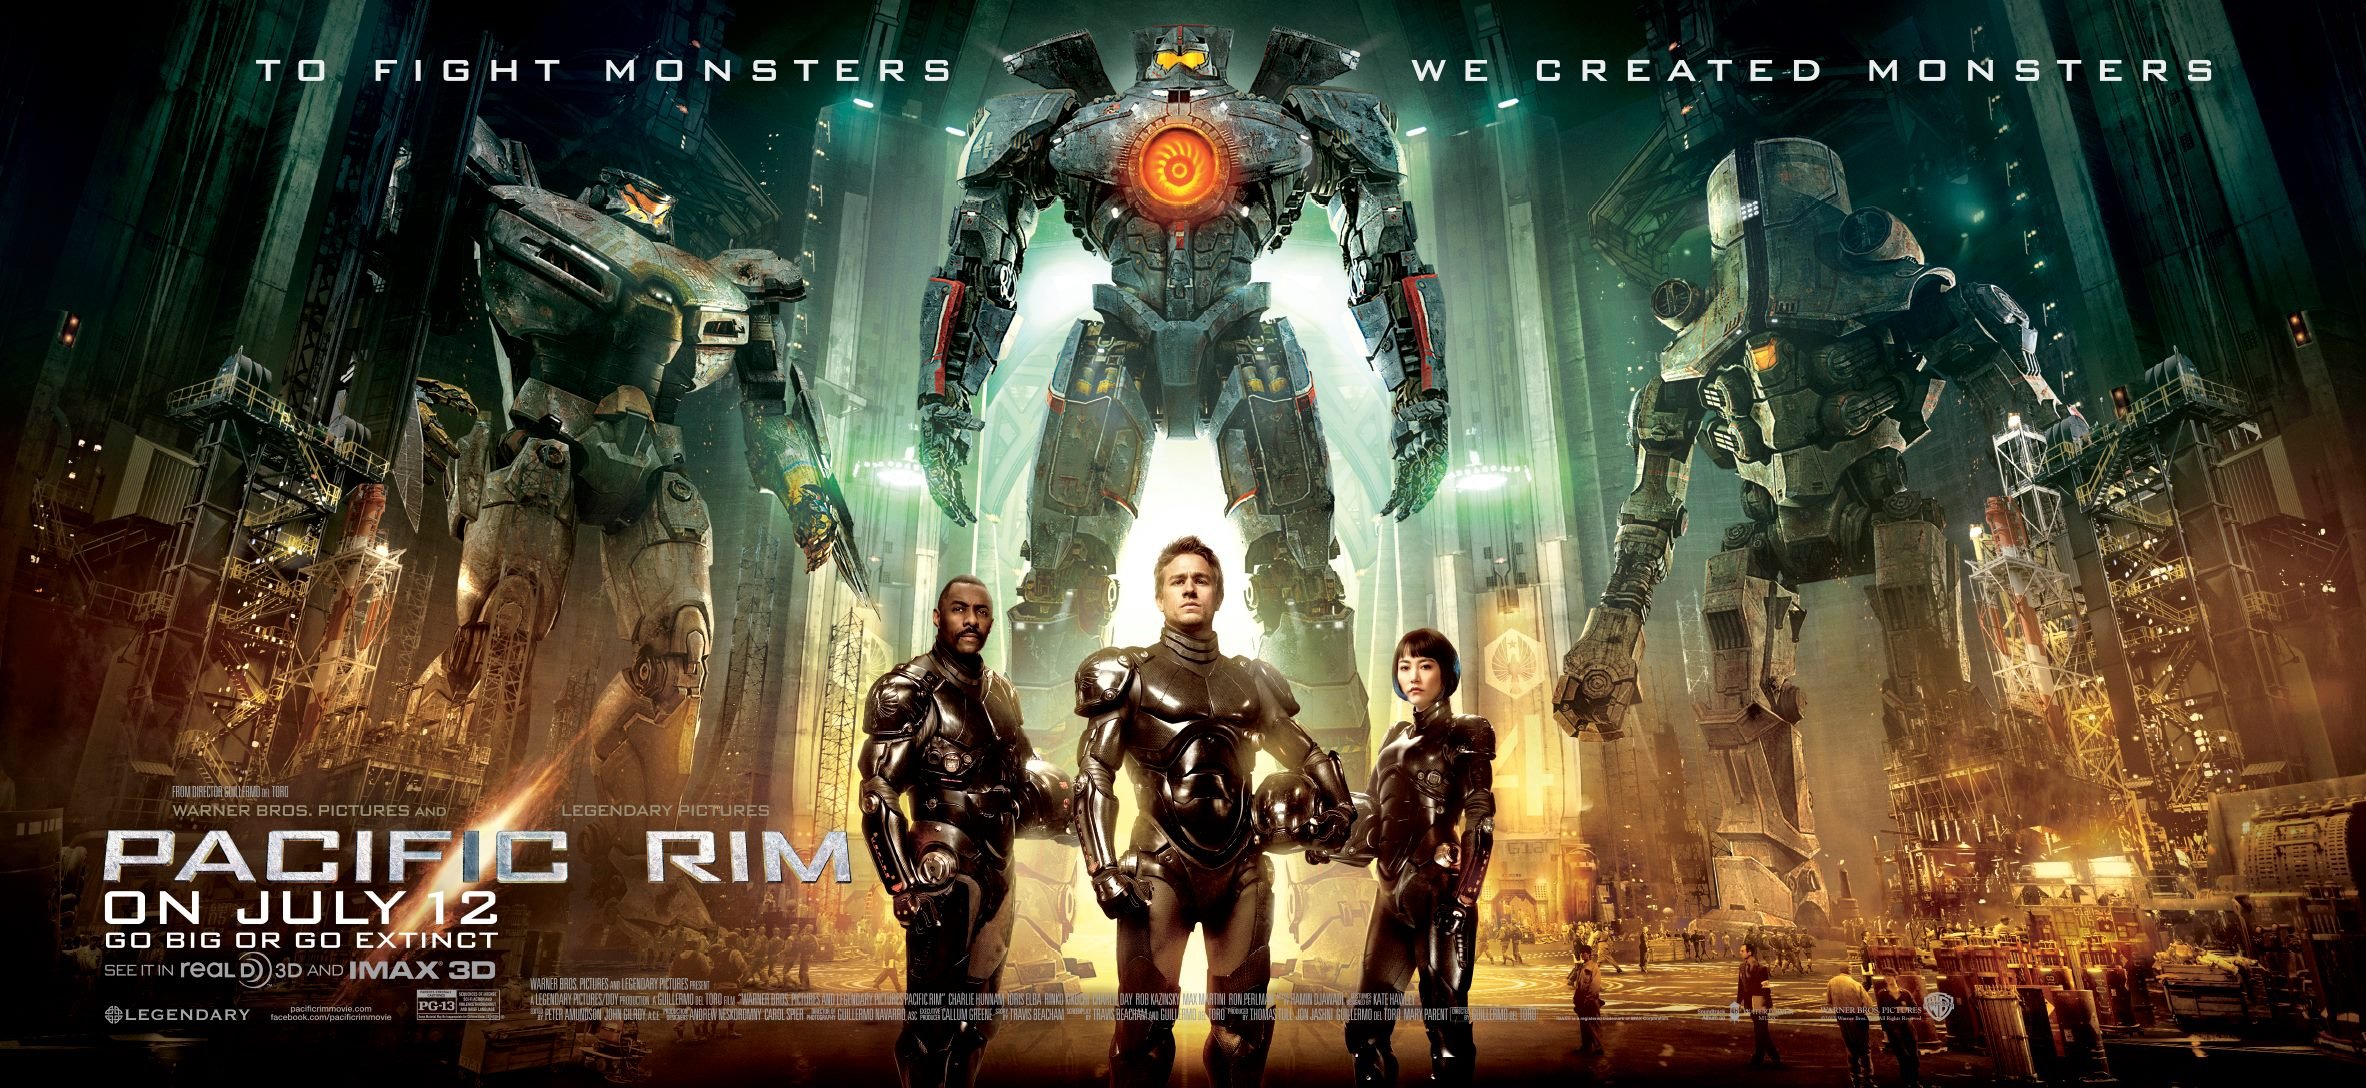 Pacific Rim Movies Are Fun